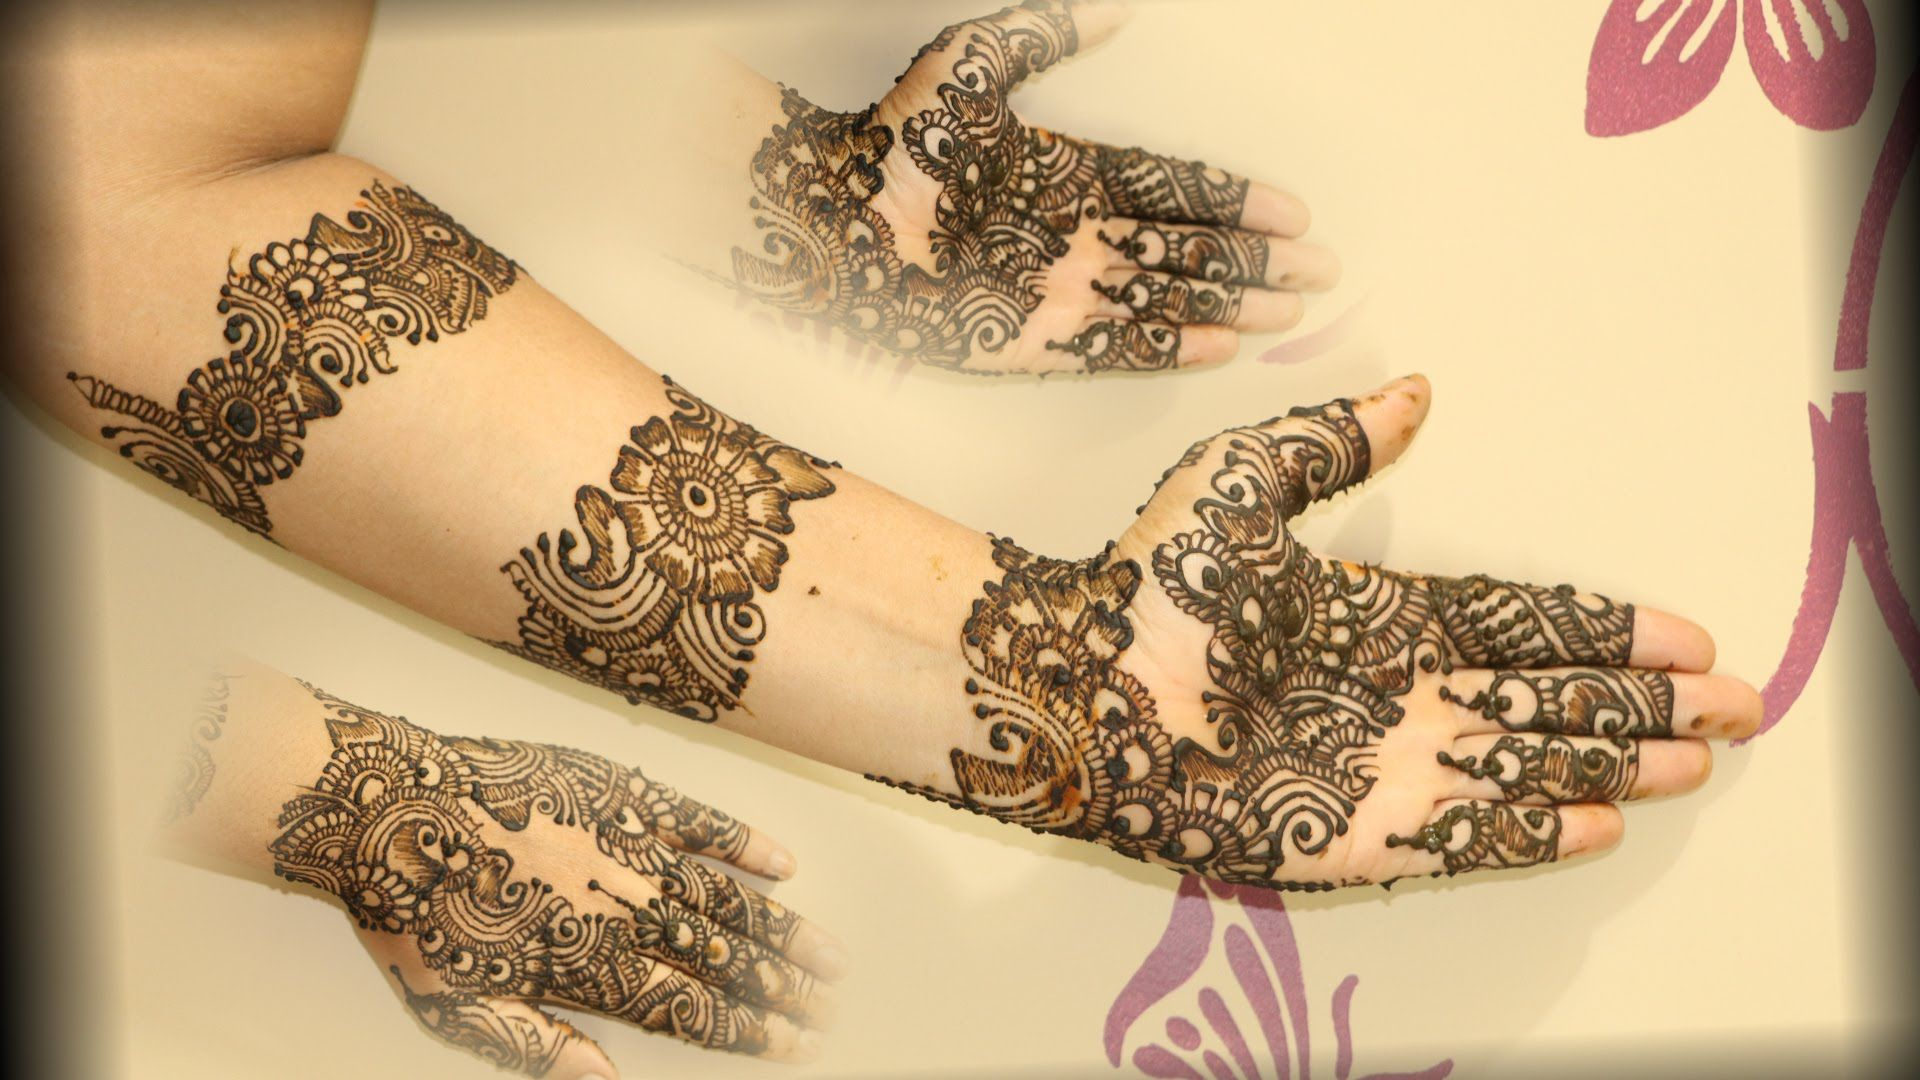 The best mehndi designs for hands livinghours - Beautiful Arabic Mehndi Https Www Livinghours Com Arabic Mehndi